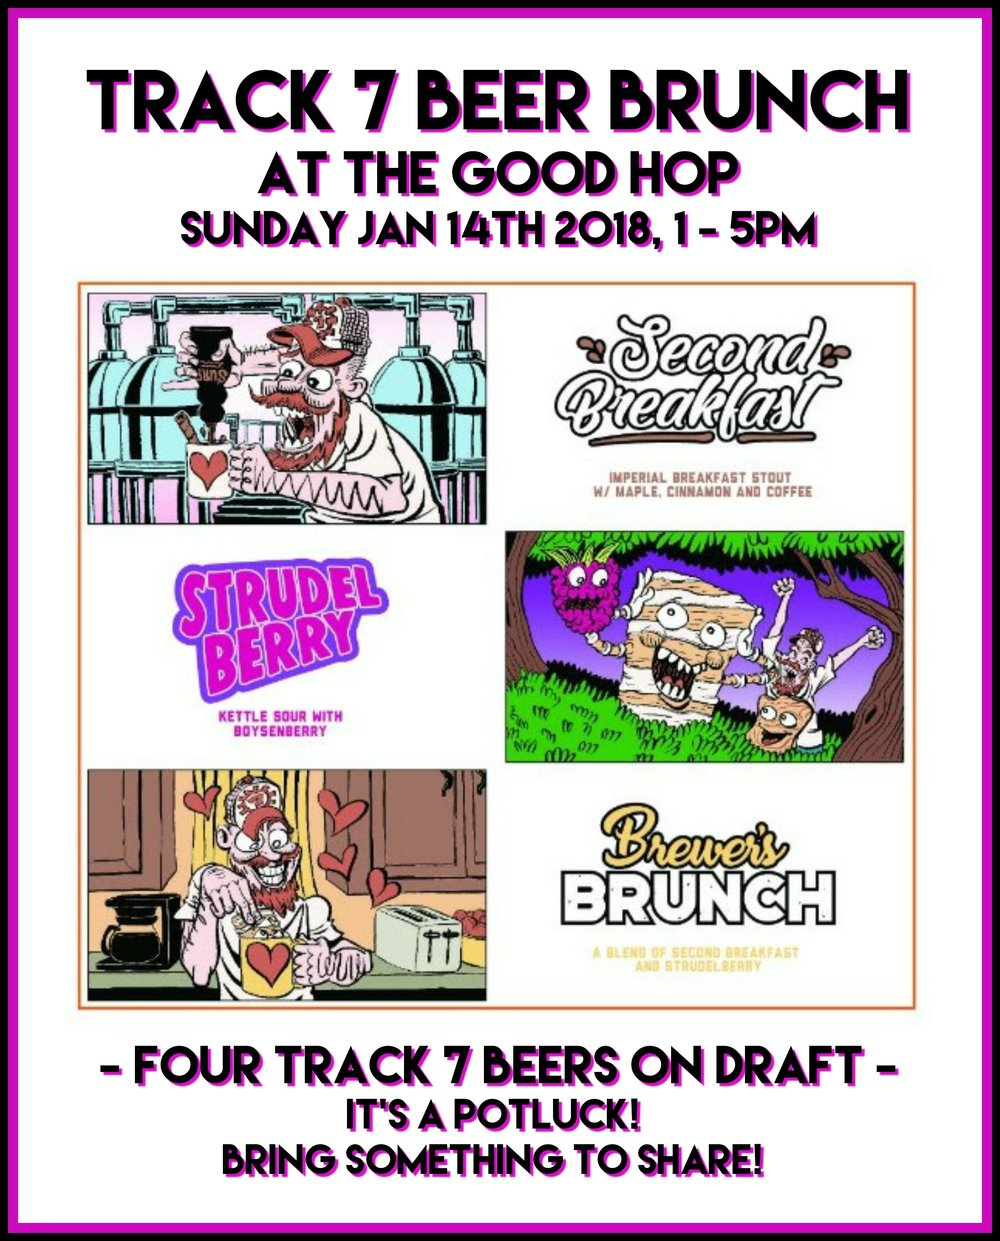 Track 7 Beer Brunch Flyer.jpg